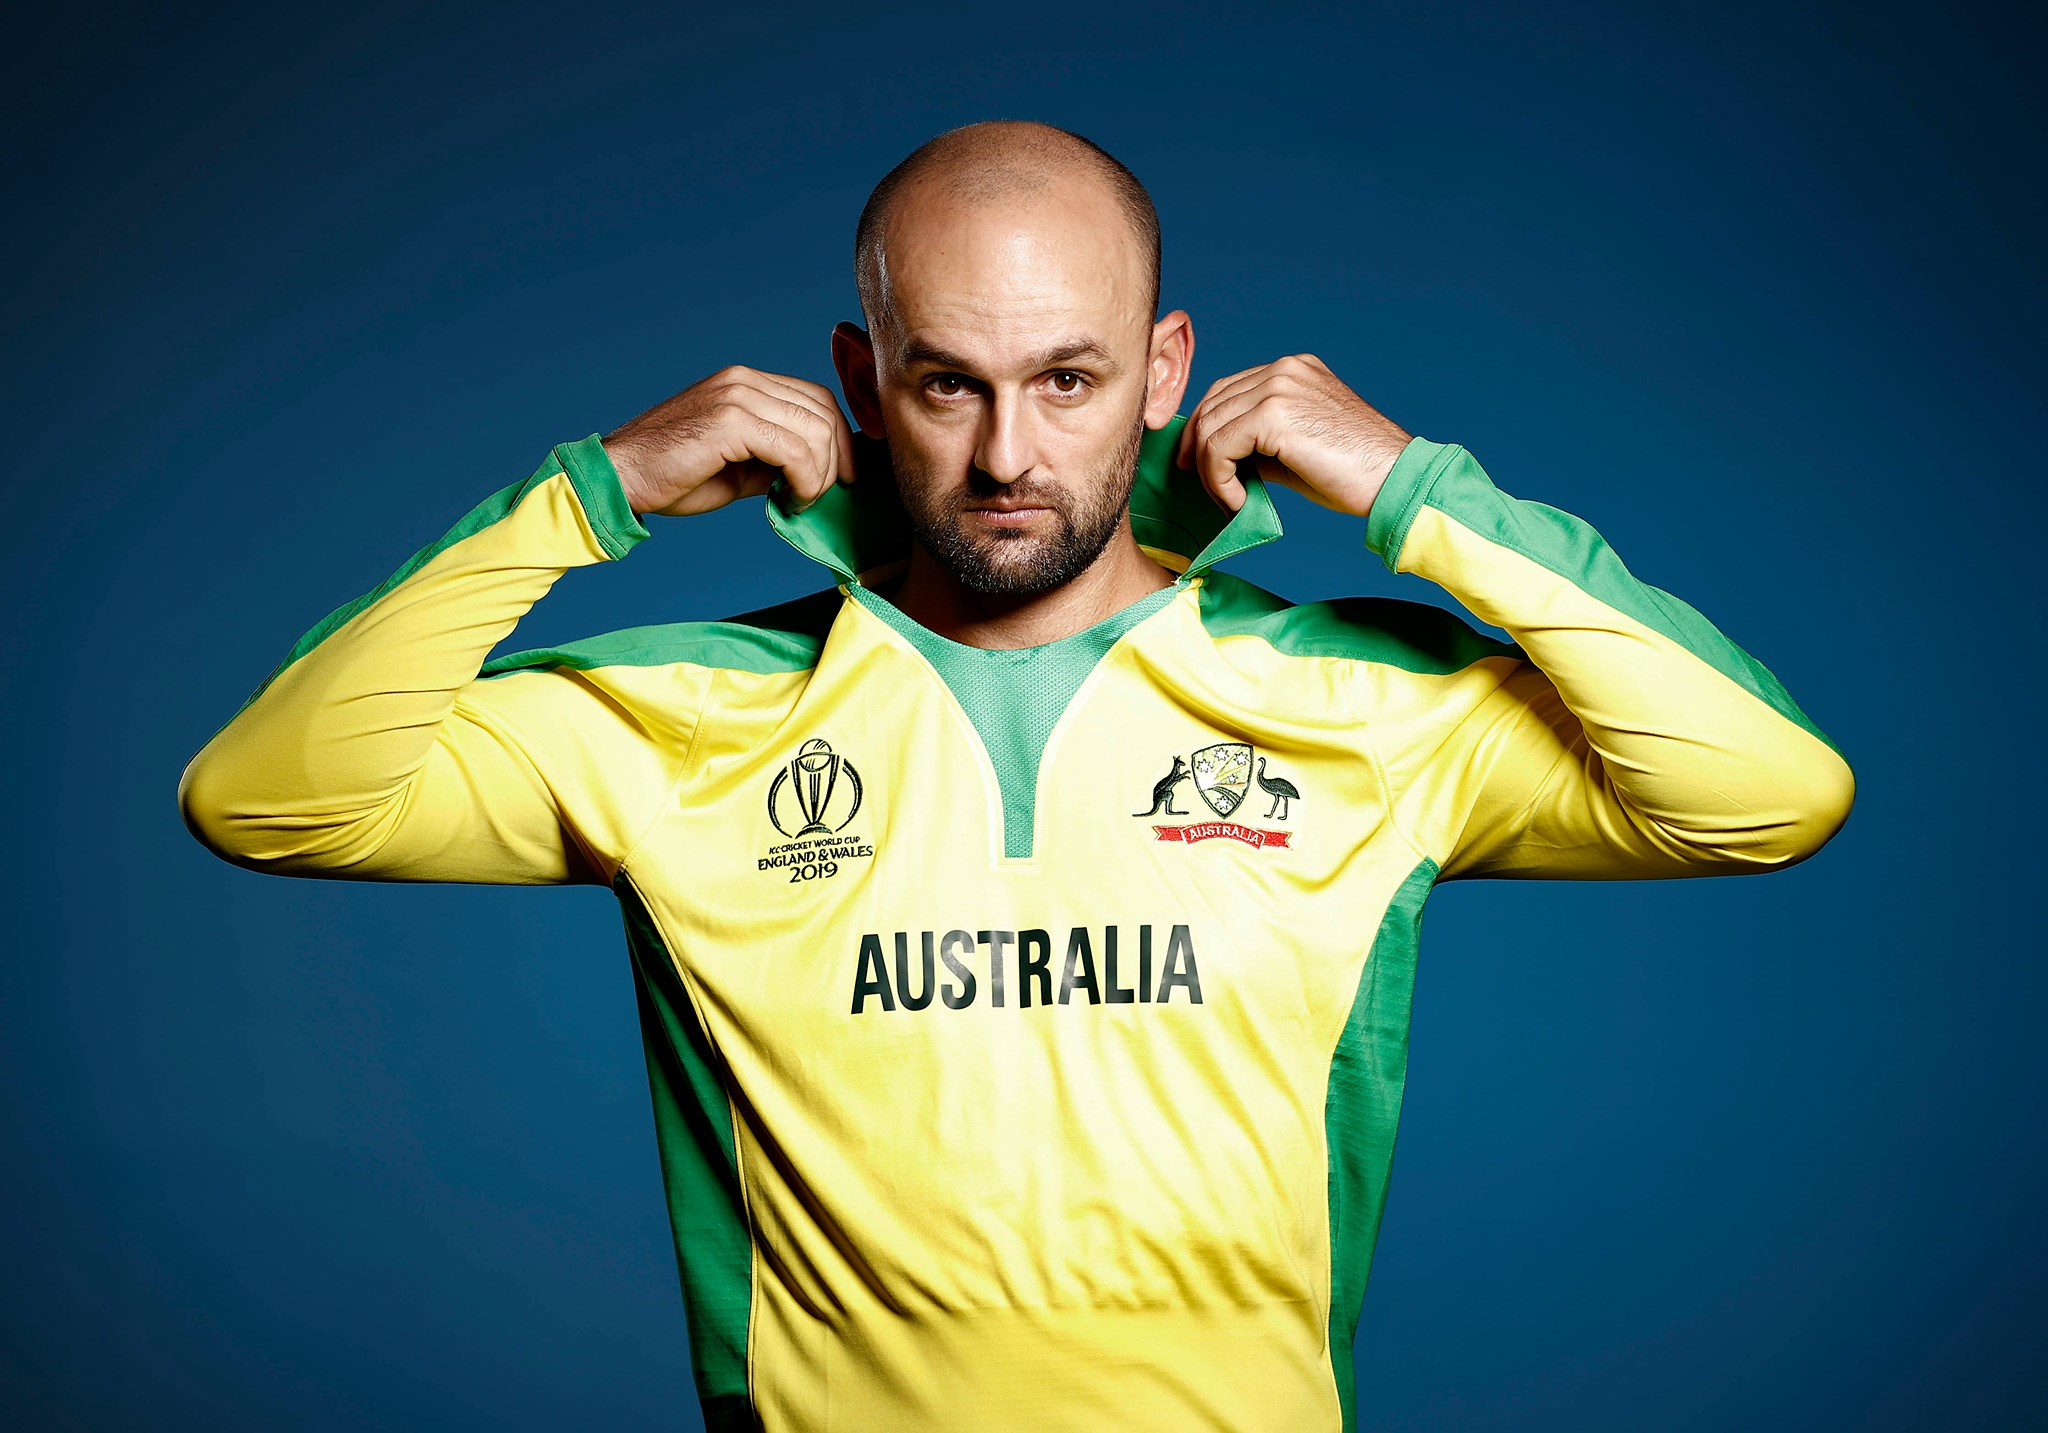 australia cricket team jersey for cricket world cup 2019